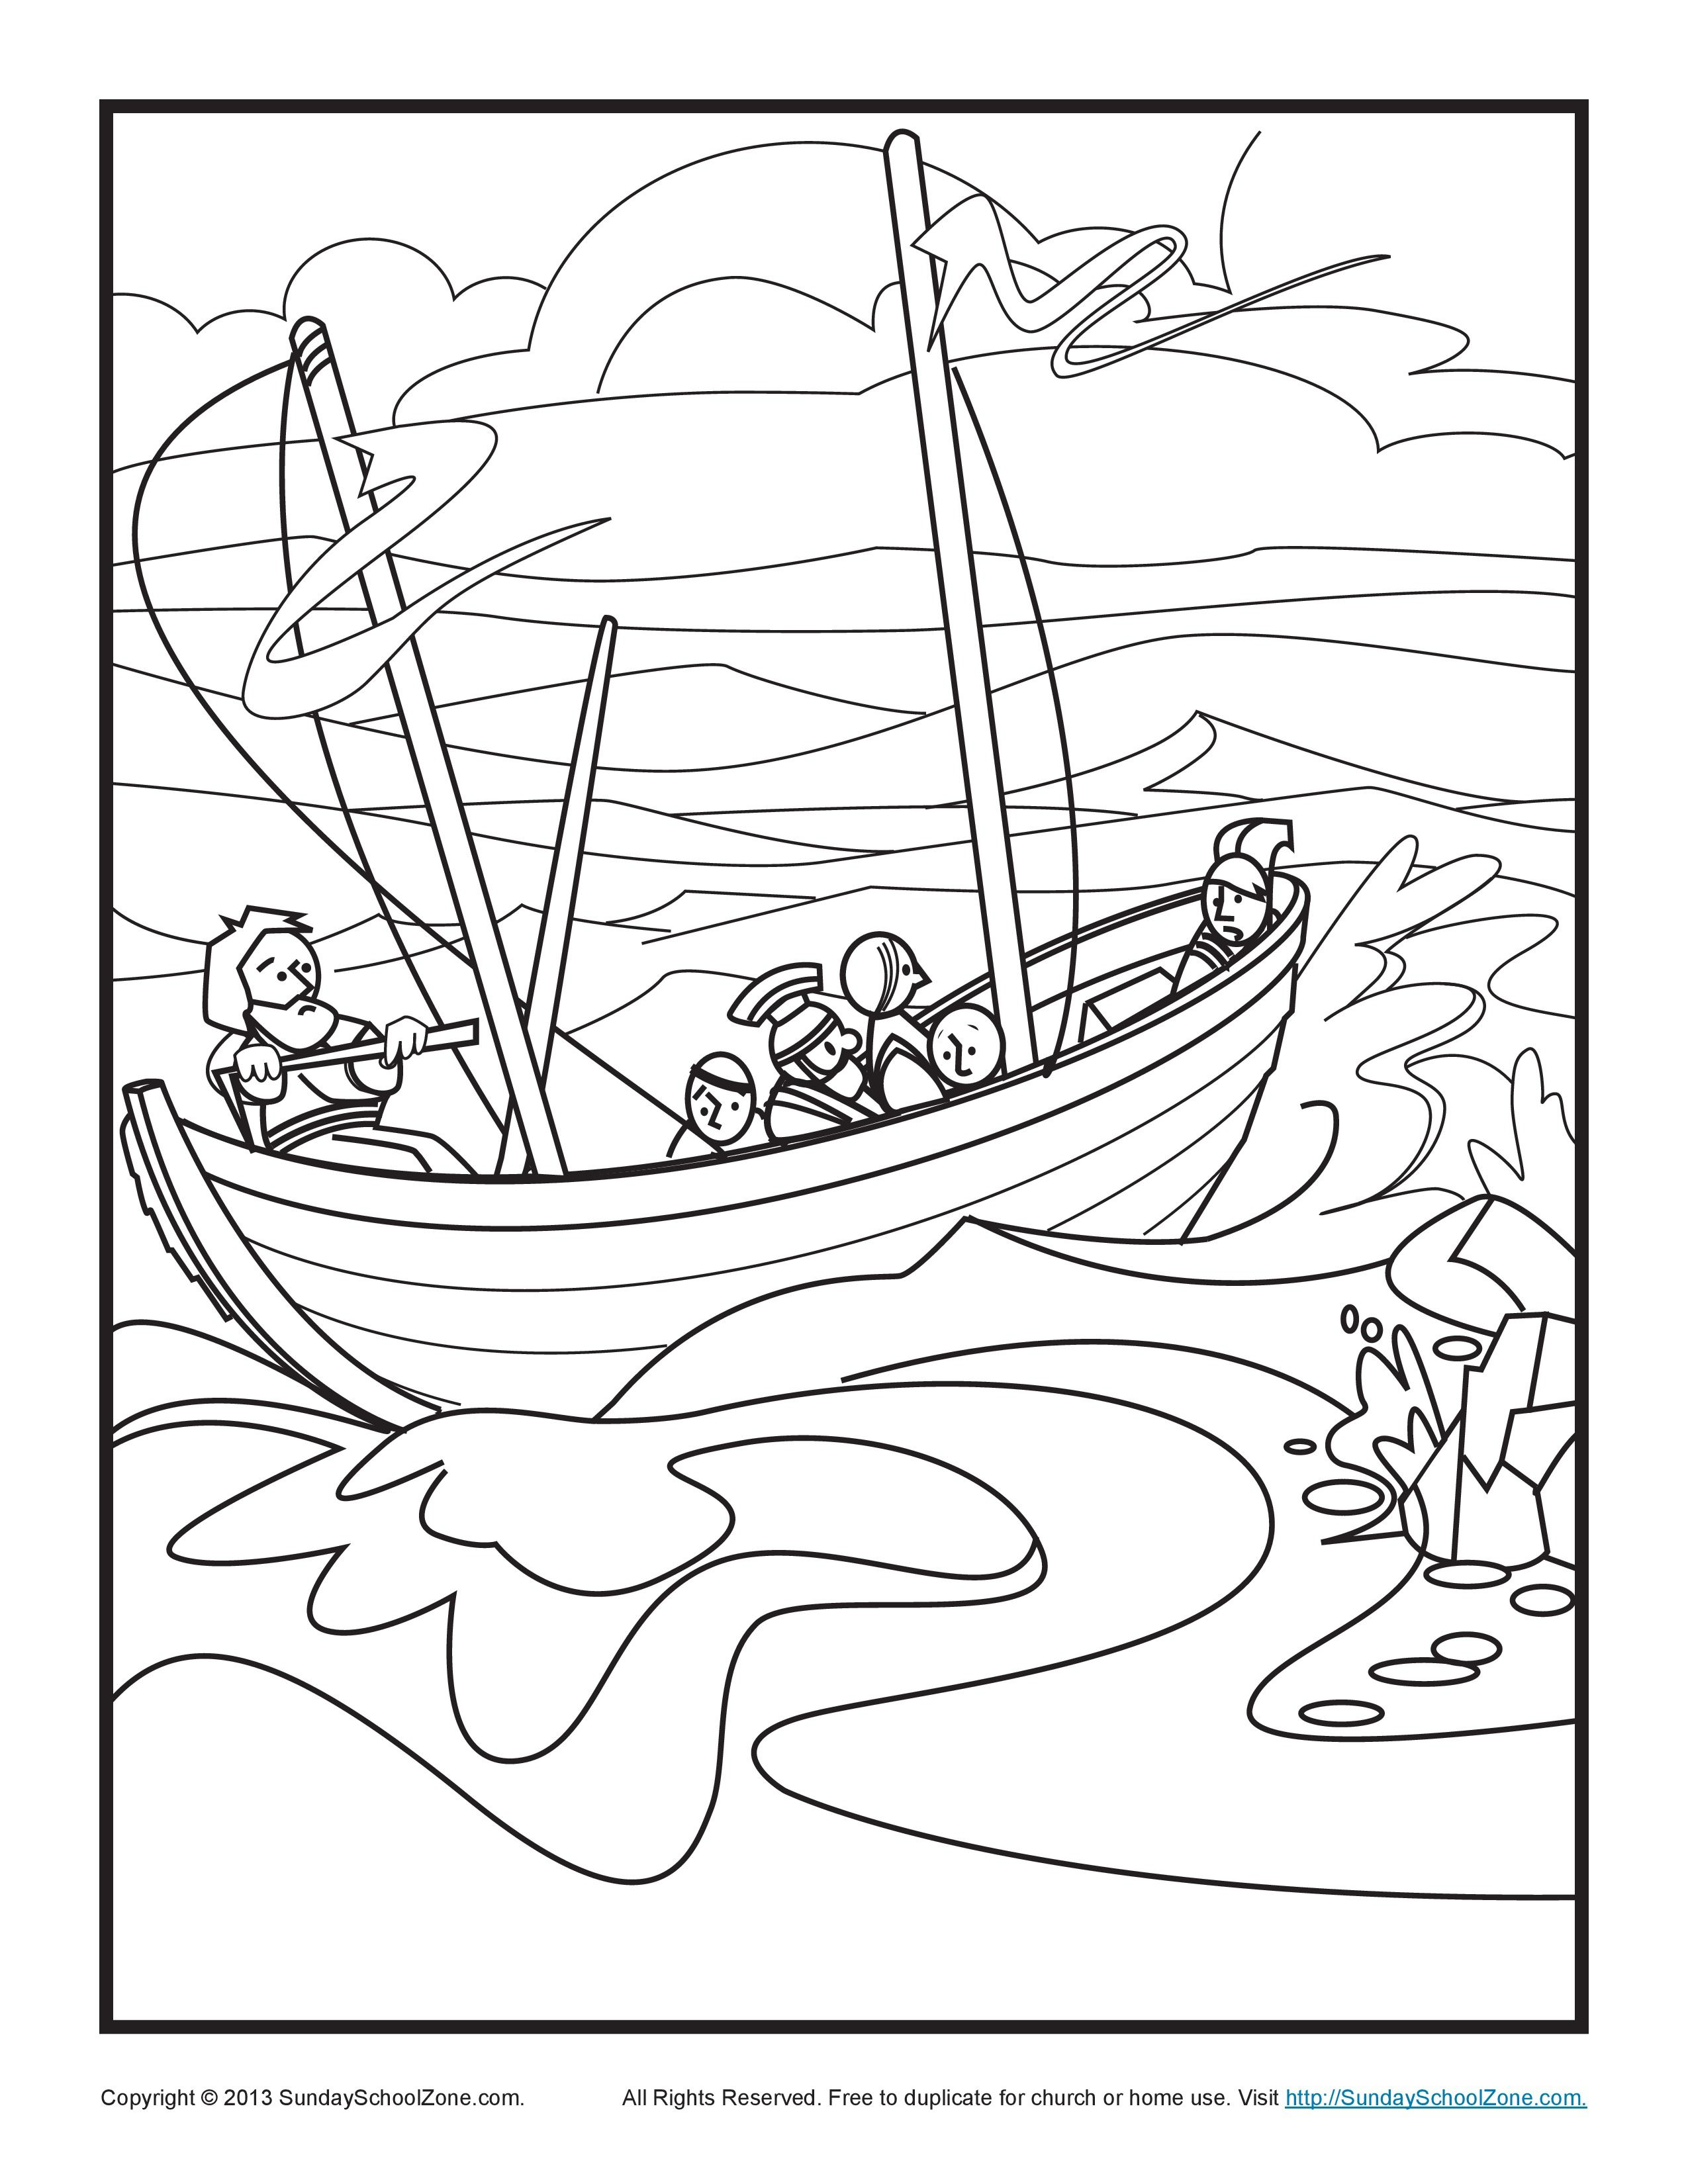 Bible Coloring Pages   Sunday School   Bible Coloring Pages